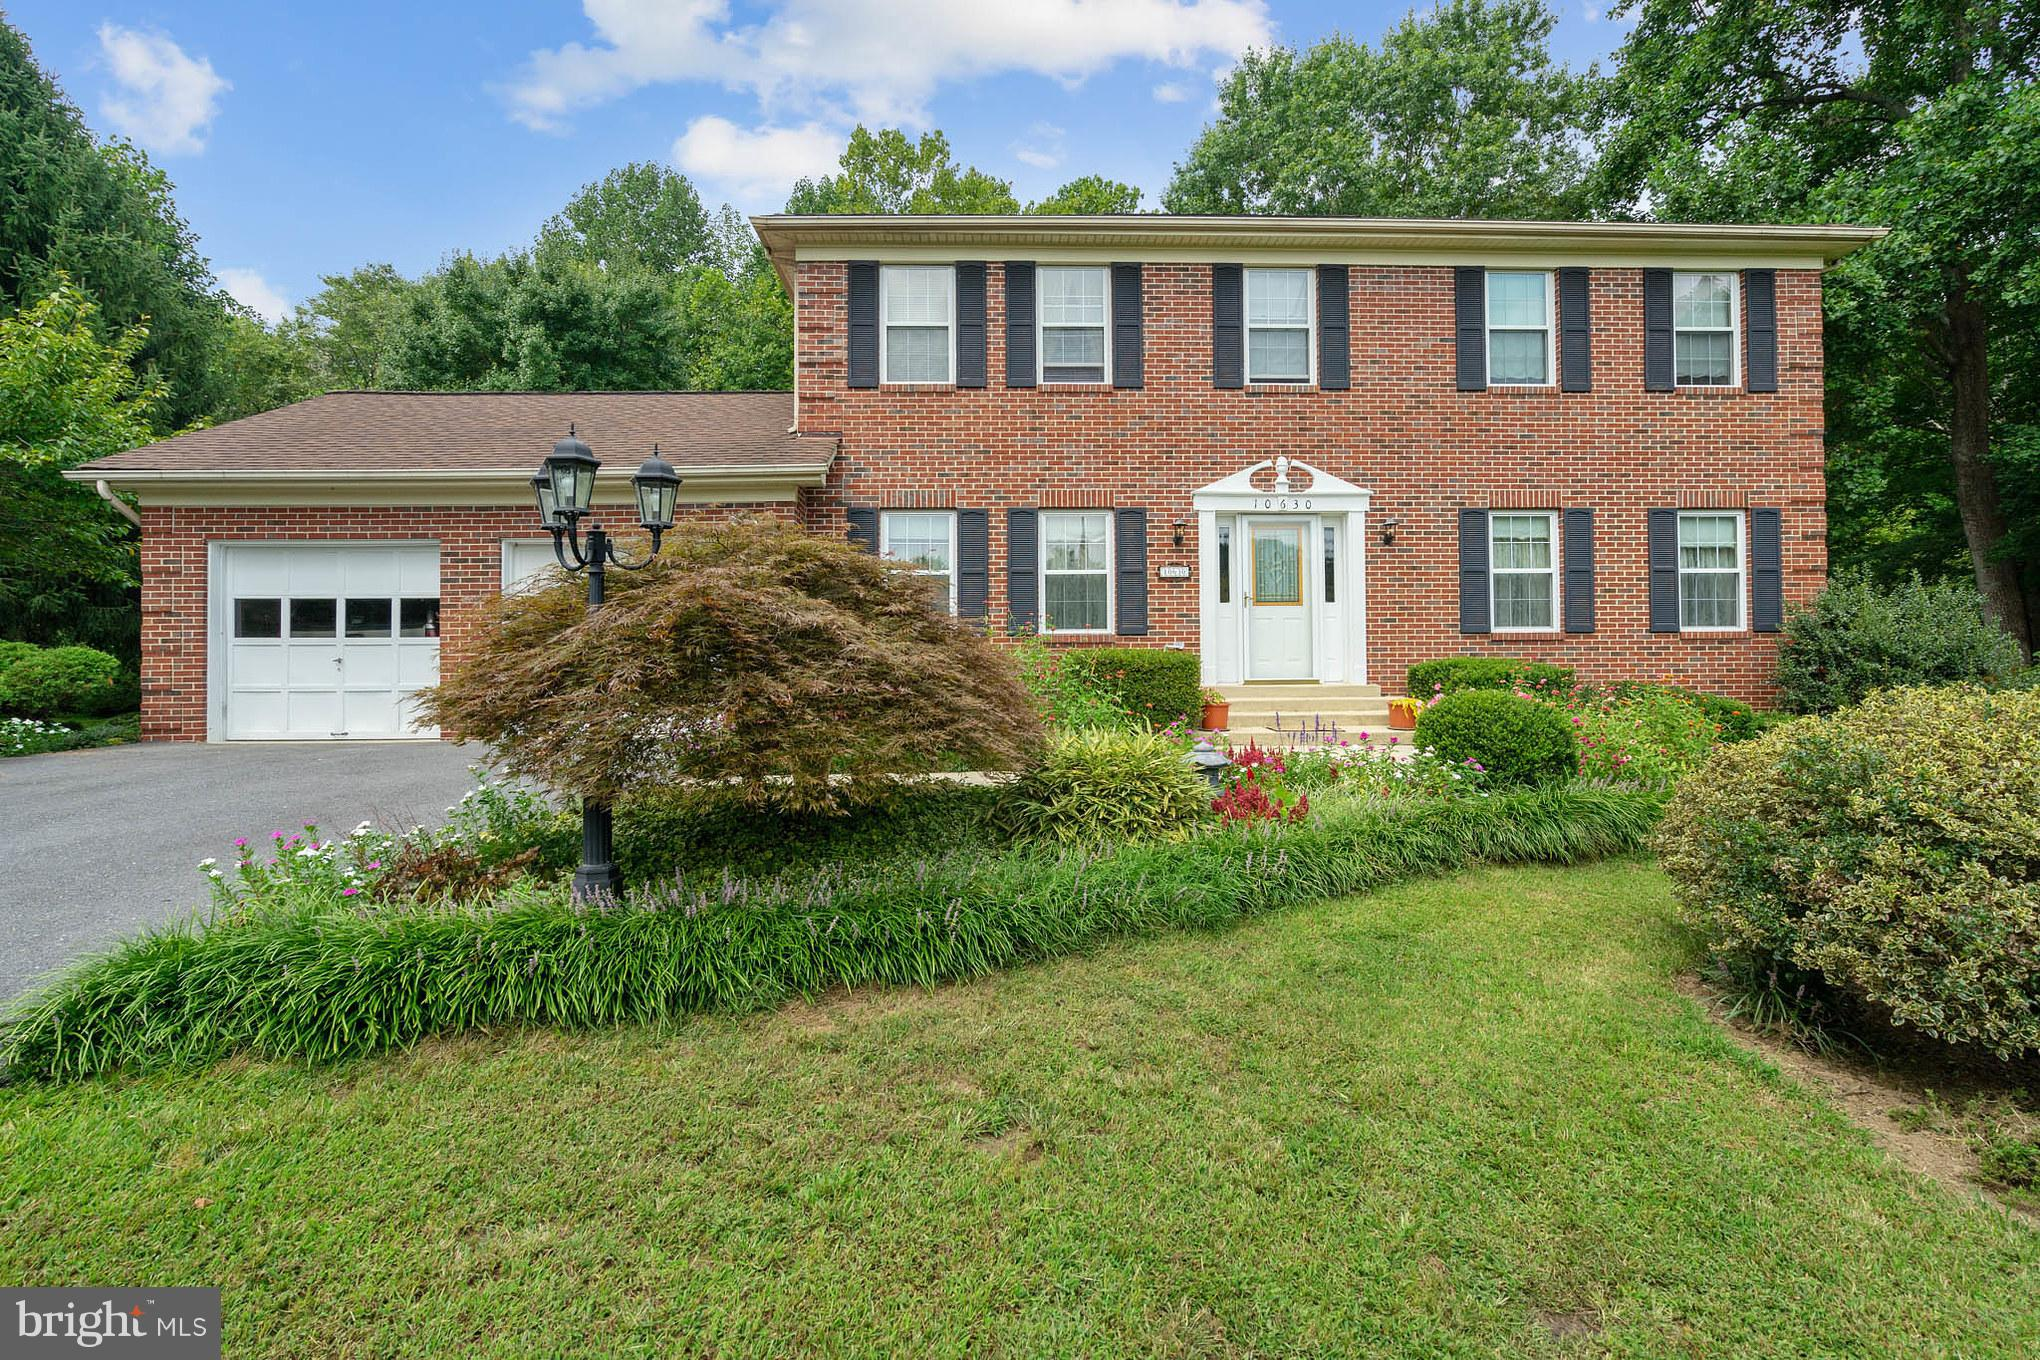 Back on the market. Park-like setting in this Northern Calvert location. Just under 2 acres located